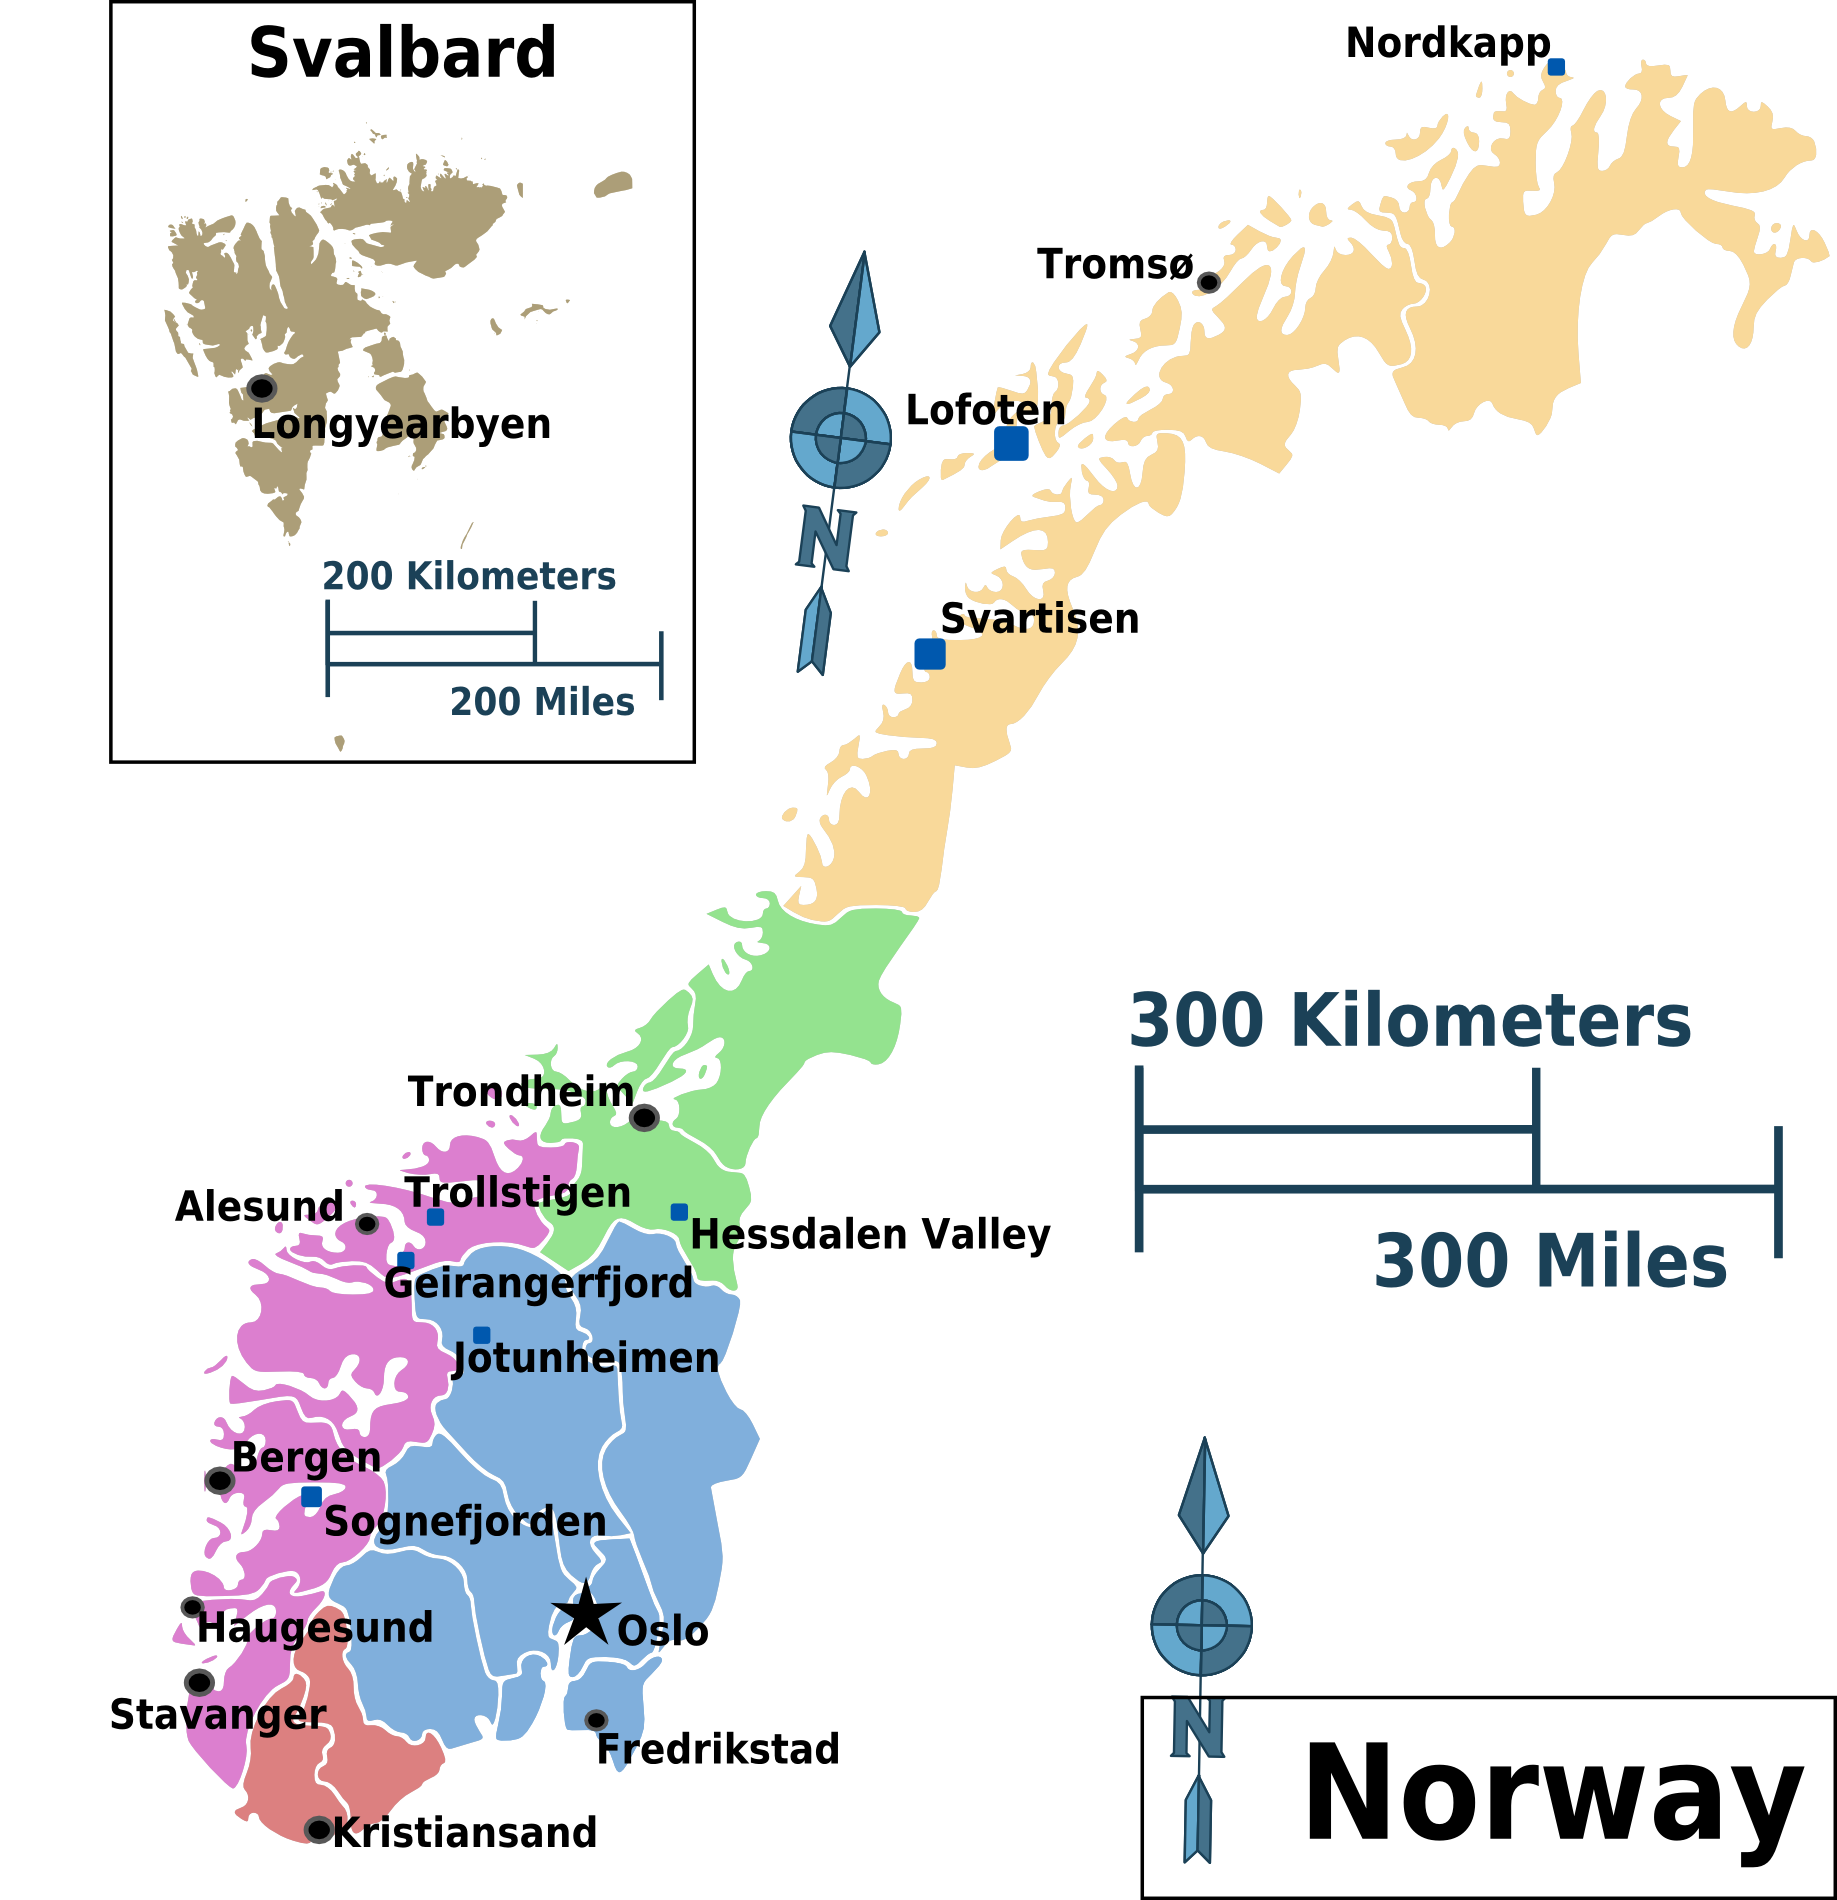 FileNorway Regions Mappng Wikimedia Commons - Norway map free